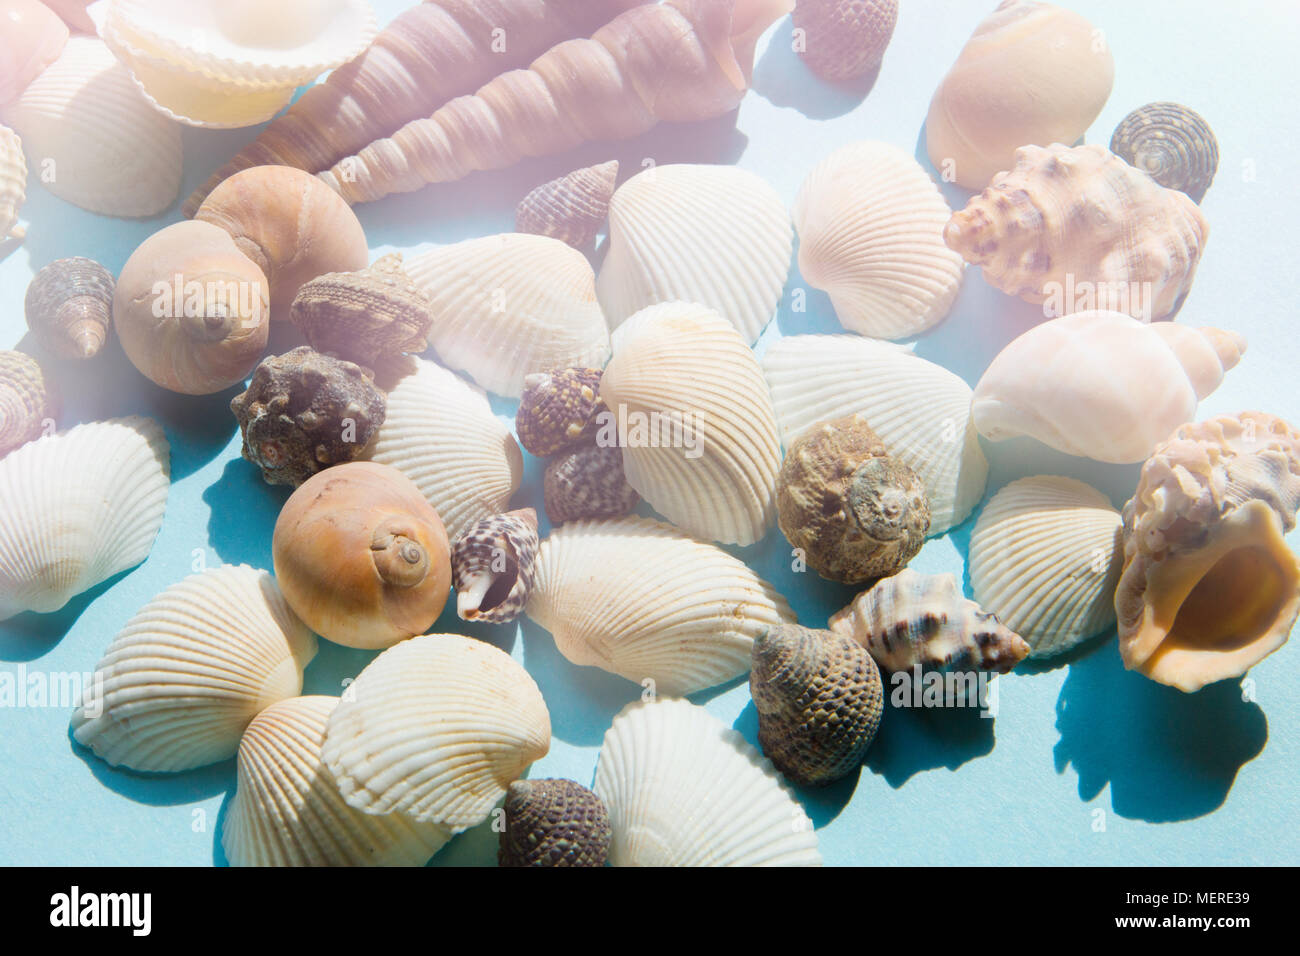 Seashells in sunlight flat lay pattern on blue background, sea vacation background, top view - Stock Image